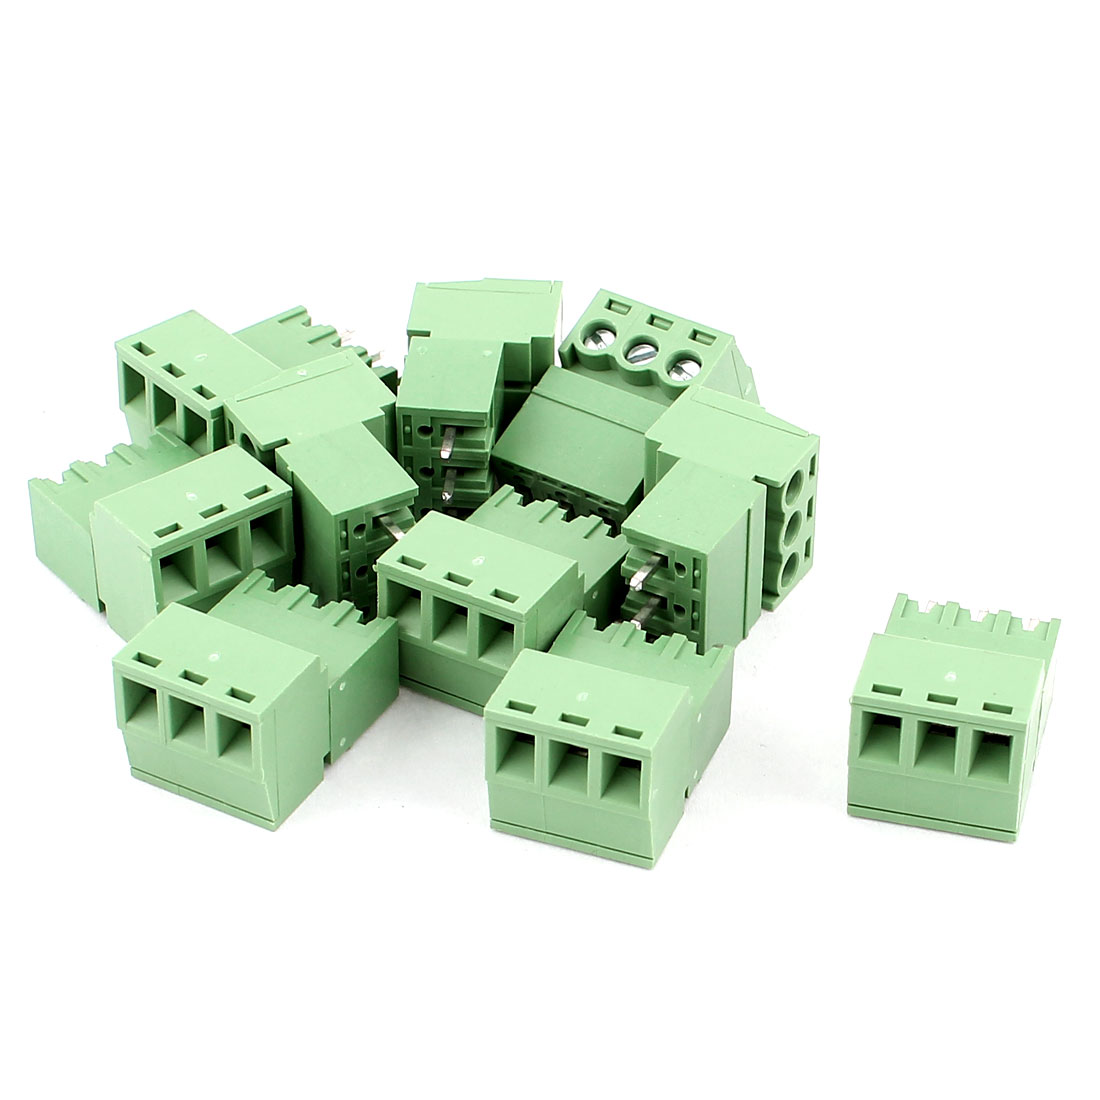 10 Pcs AC 300V 8A PCB Screw Terminal Block Connector 3.81mm Pitch Green